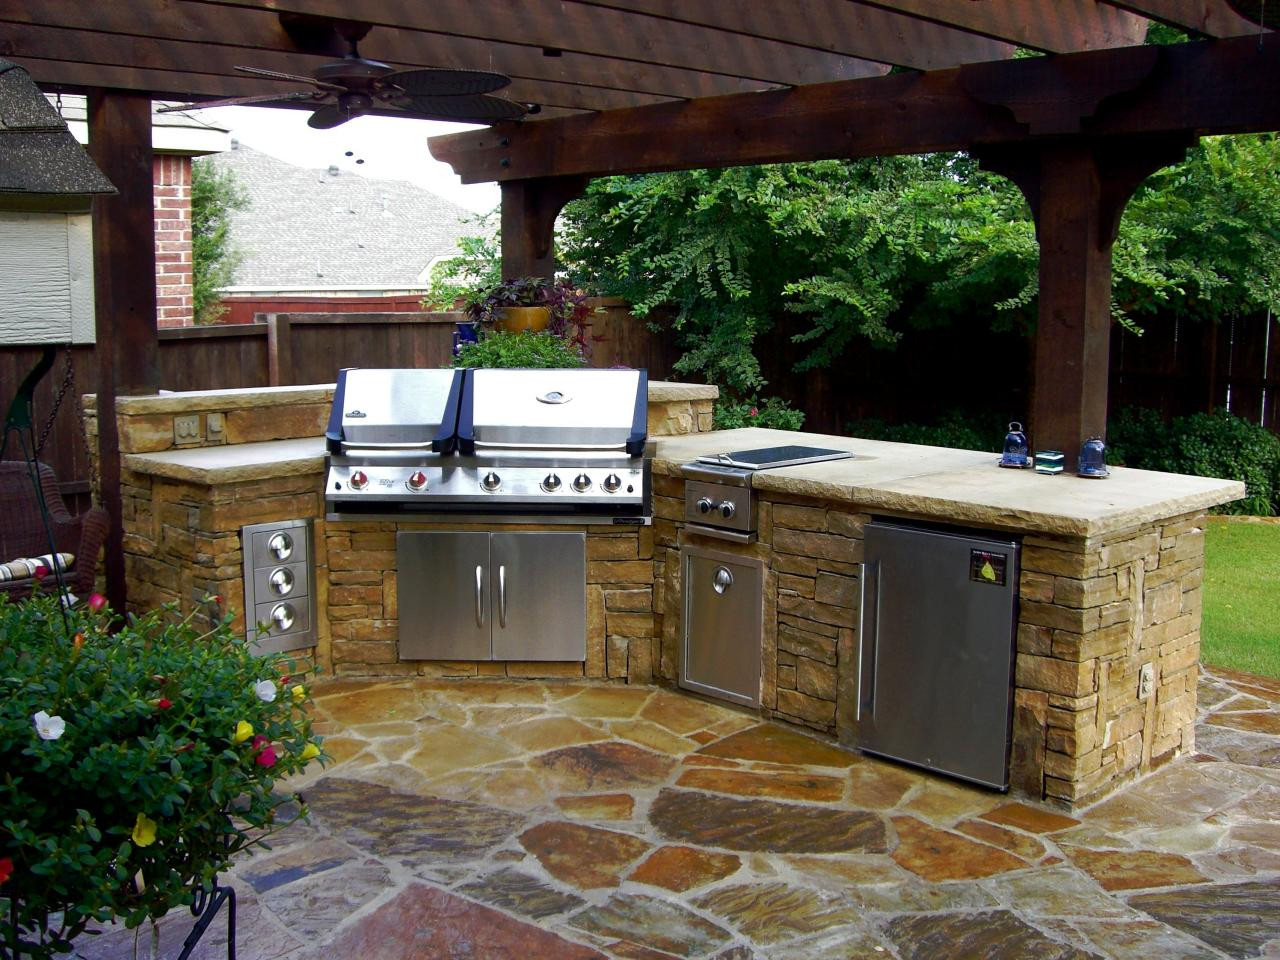 Outdoor Kitchen Diy  These DIY Outdoor Kitchen Plans Turn Your Backyard Into